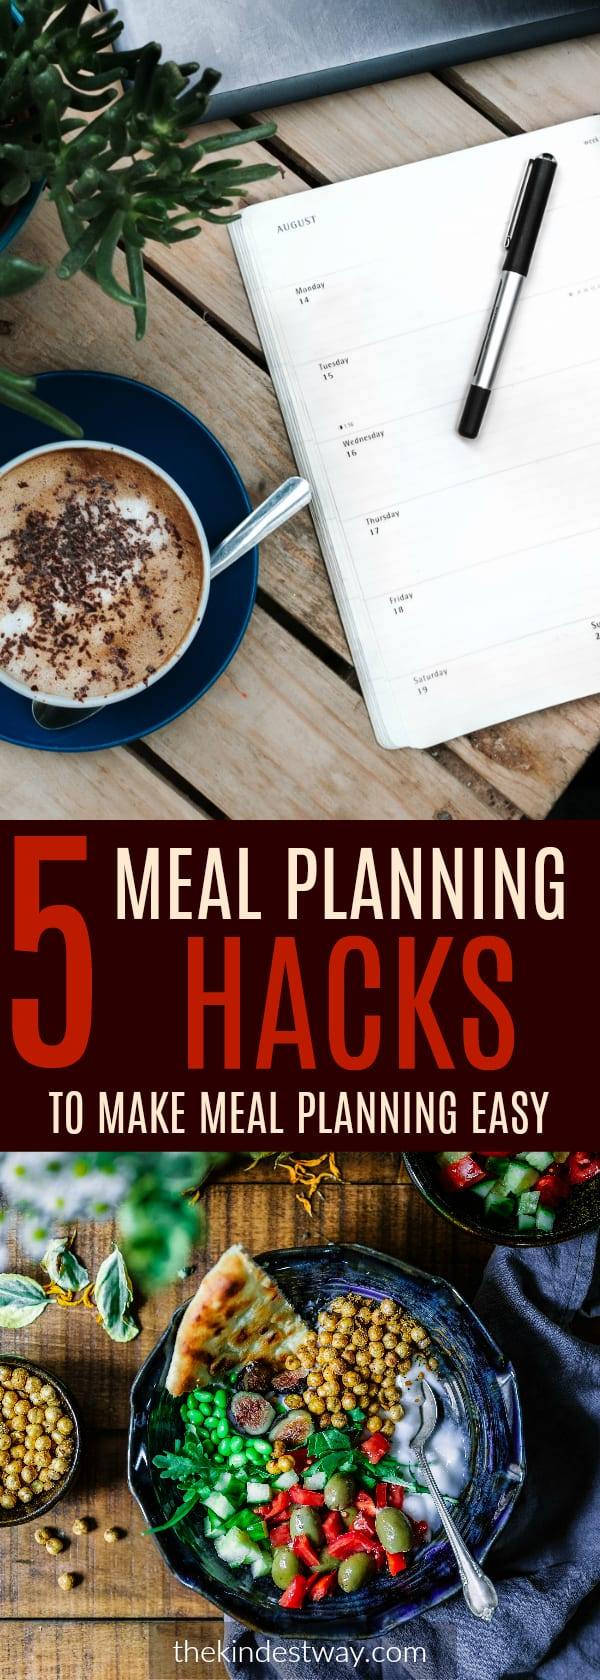 Meal Planning | Meal Planning Ideas | Meal Planning Hacks | Easy Meal Planning | Family Meal Planning | Meal Planning for Beginners | Meal Planning on a Budget |